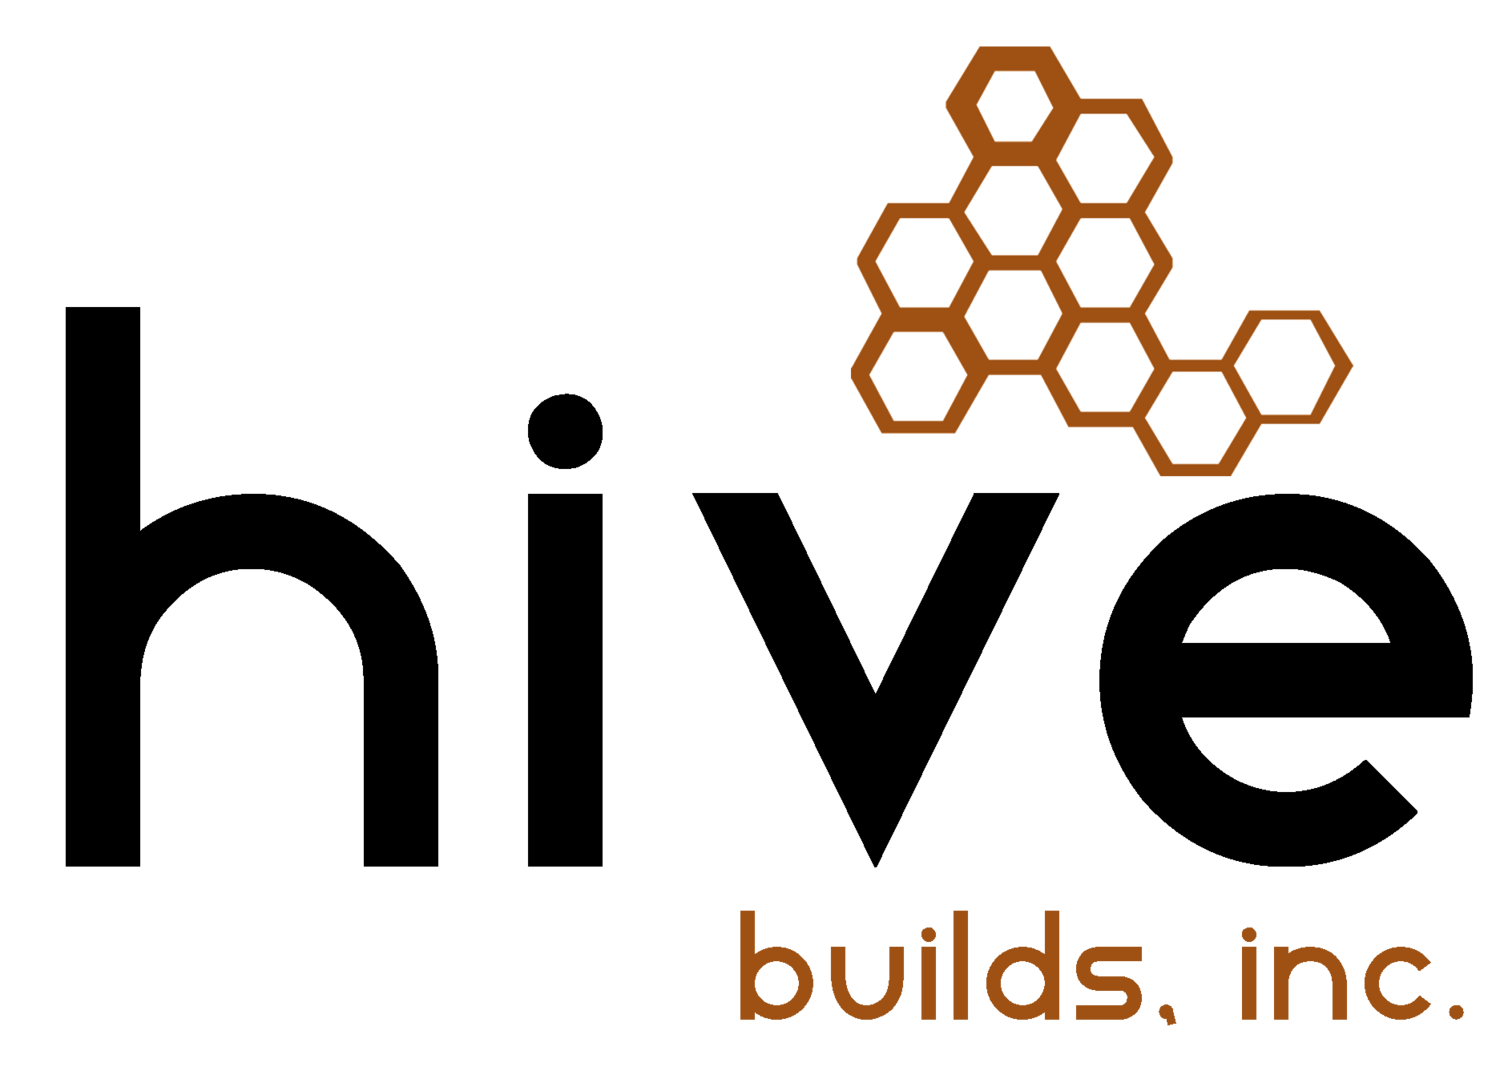 Hive Builds, Inc. | San Francisco Bay Area Commercial & Residential Building Contractors